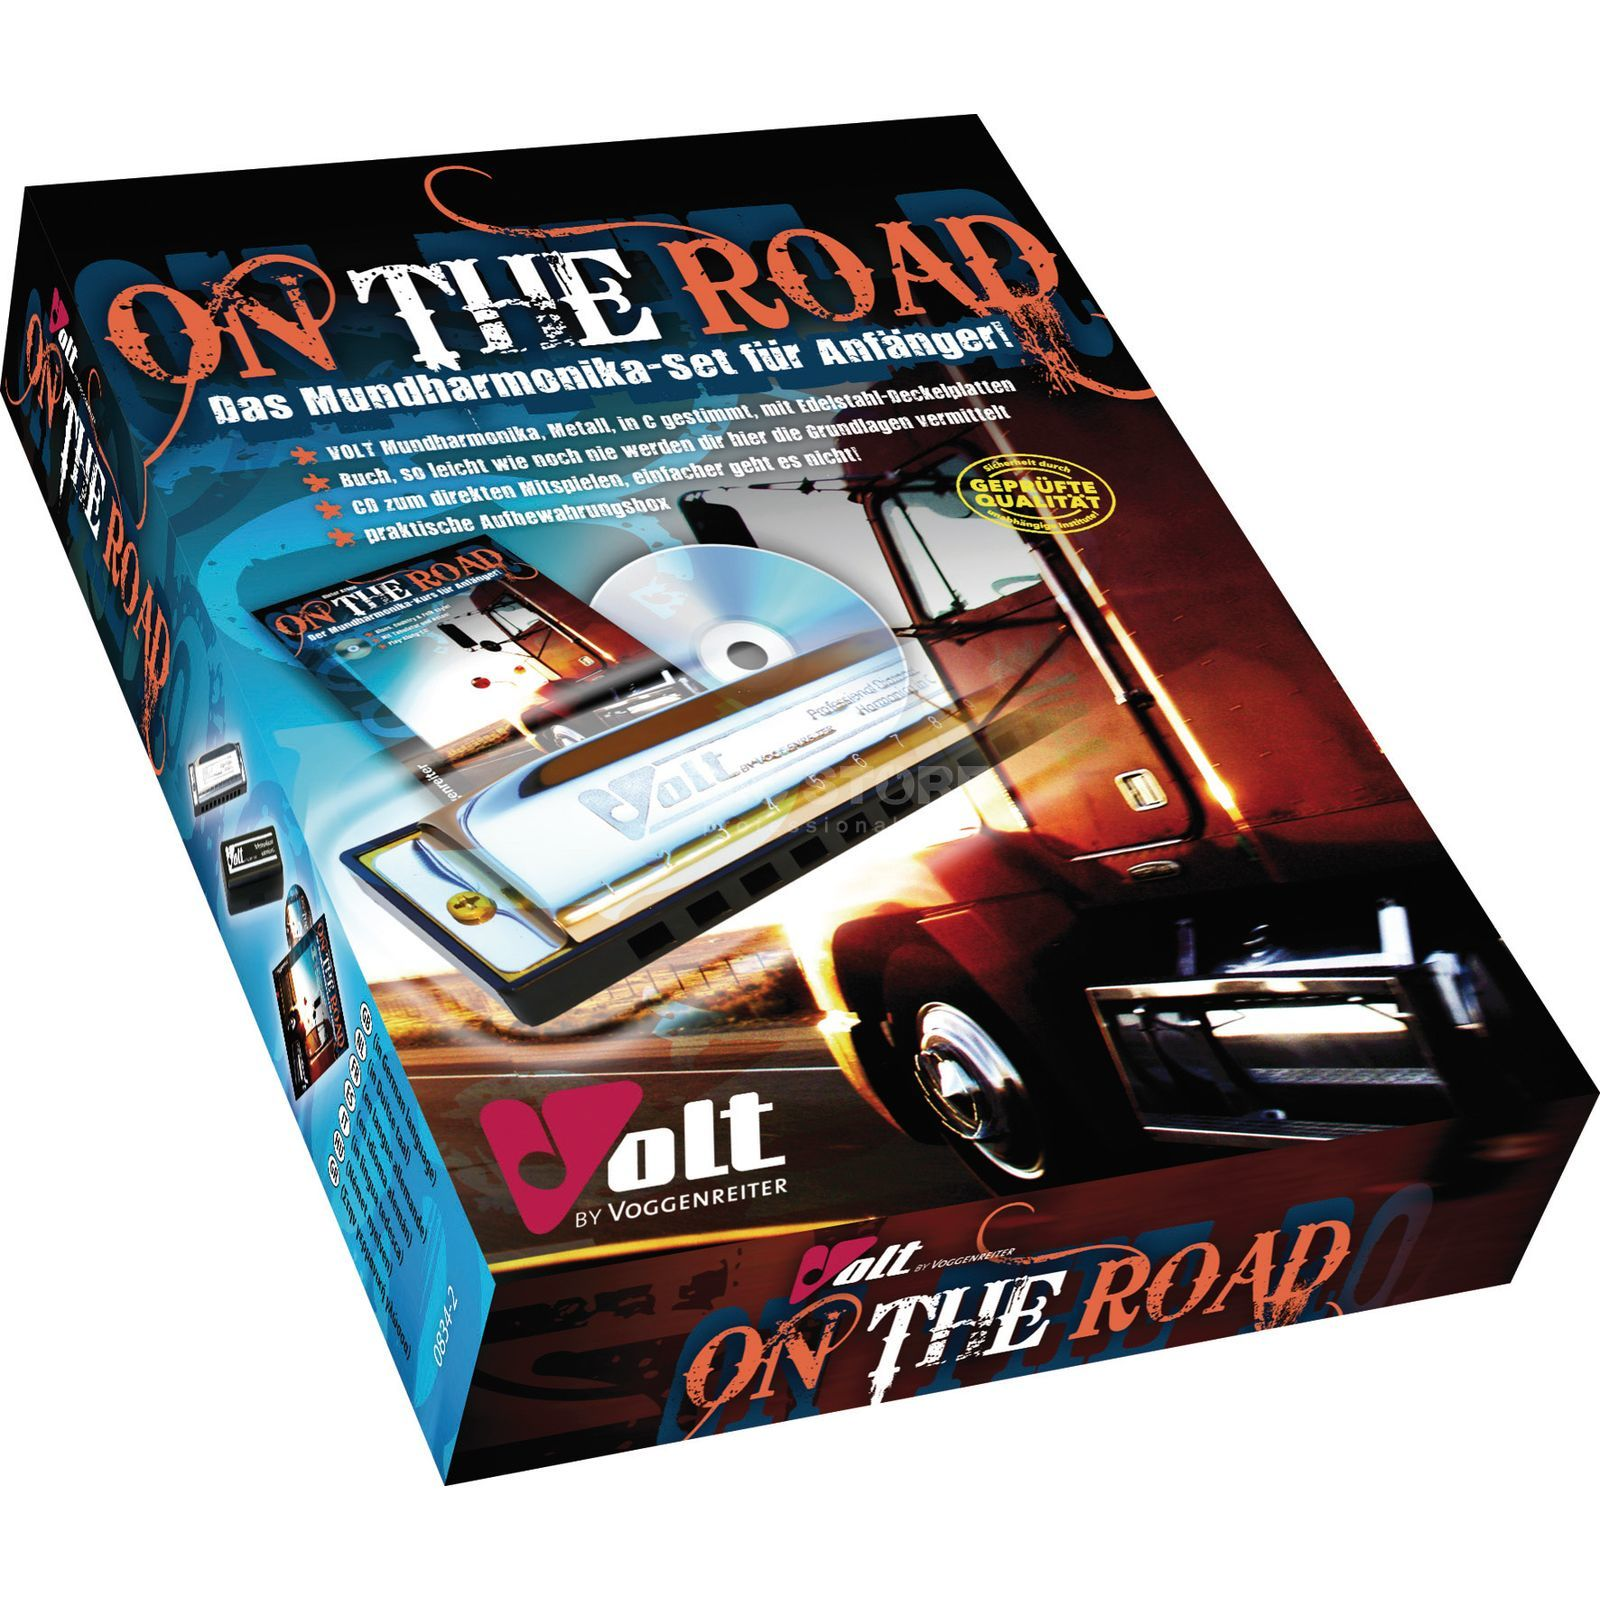 Voggenreiter On the Road ArmónicaSet Dieter Kropp, Buch/Muha/CD Imagen del producto